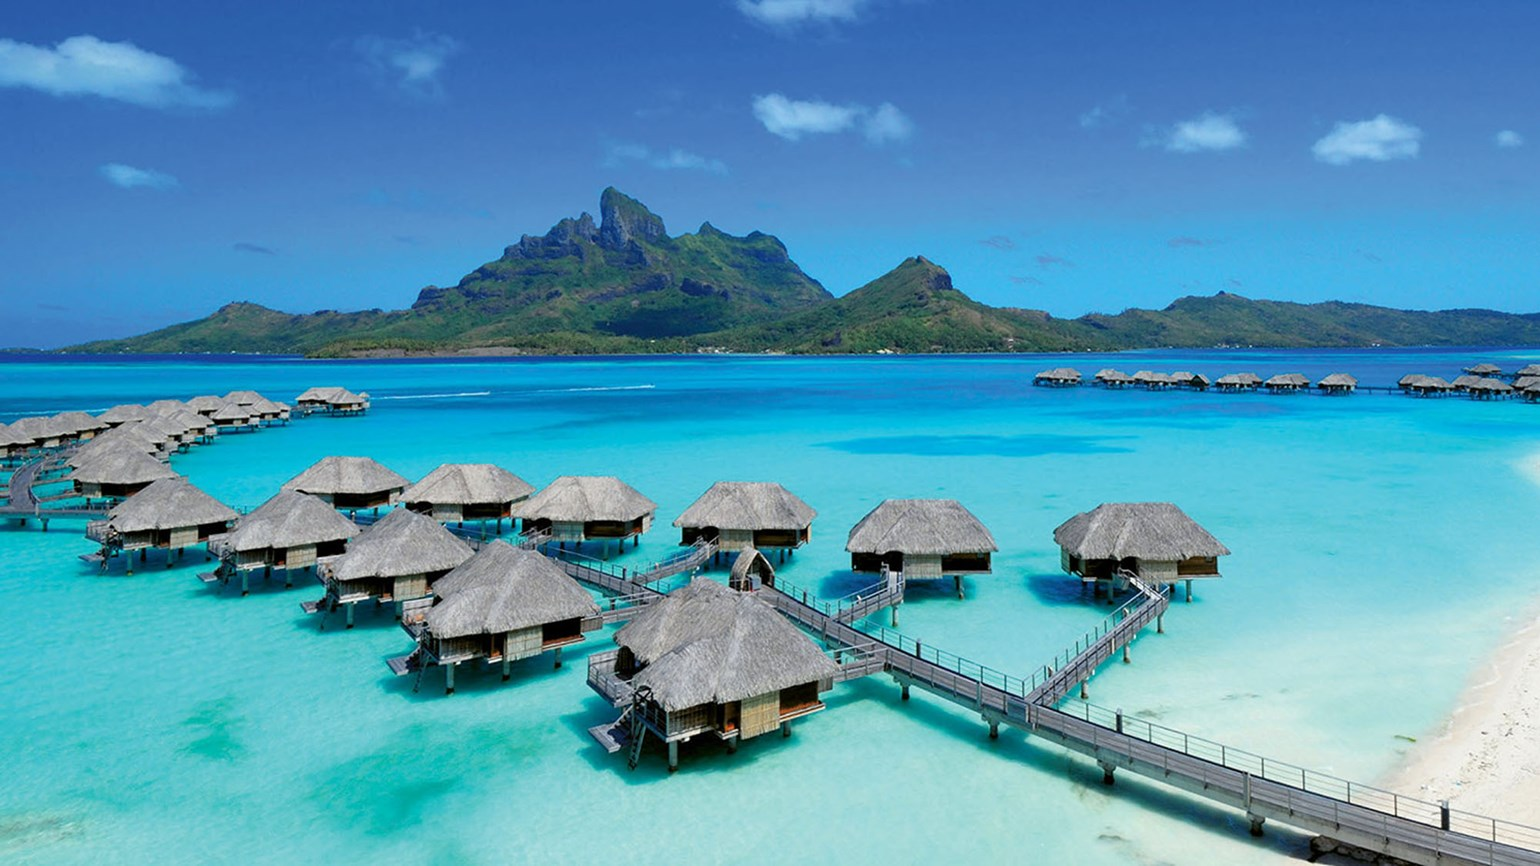 Four Seasons Resort Bora Bora package celebrates the overwater bungalow